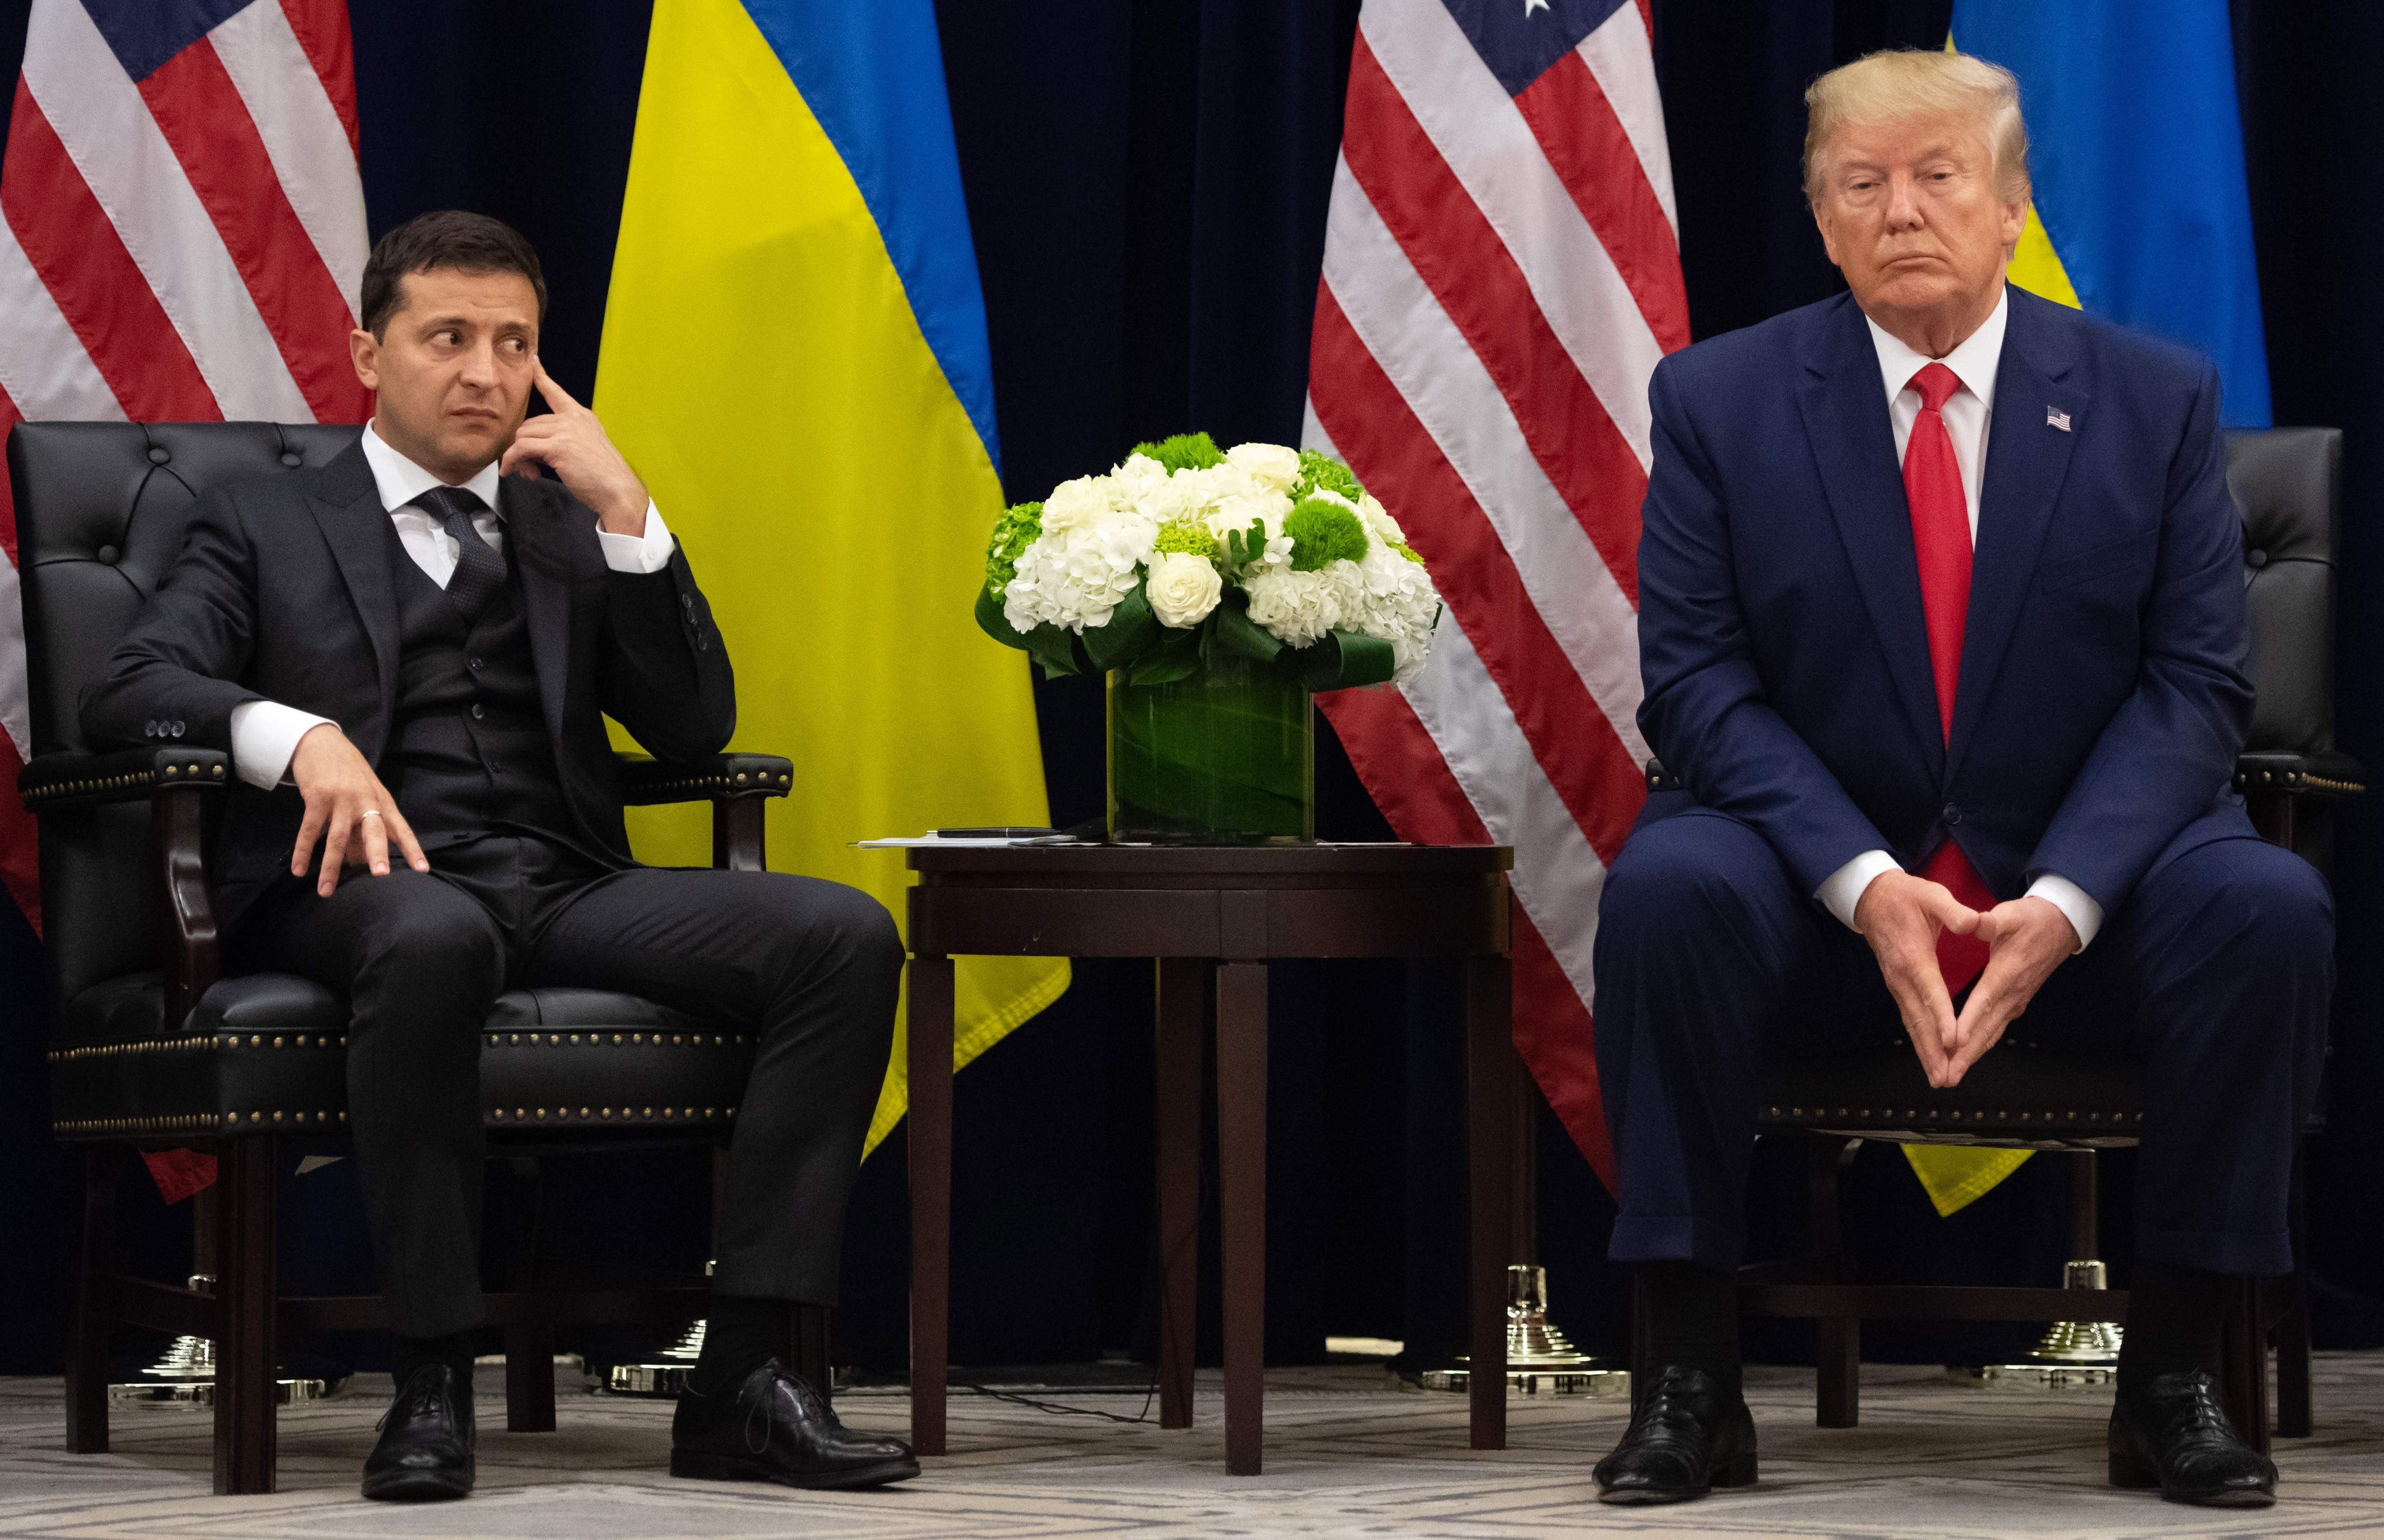 In this file photo taken on September 25, 2019 US President Donald Trump and Ukrainian President Volodymyr Zelensky looks on during a meeting in New York on the sidelines of the United Nations General Assembly.